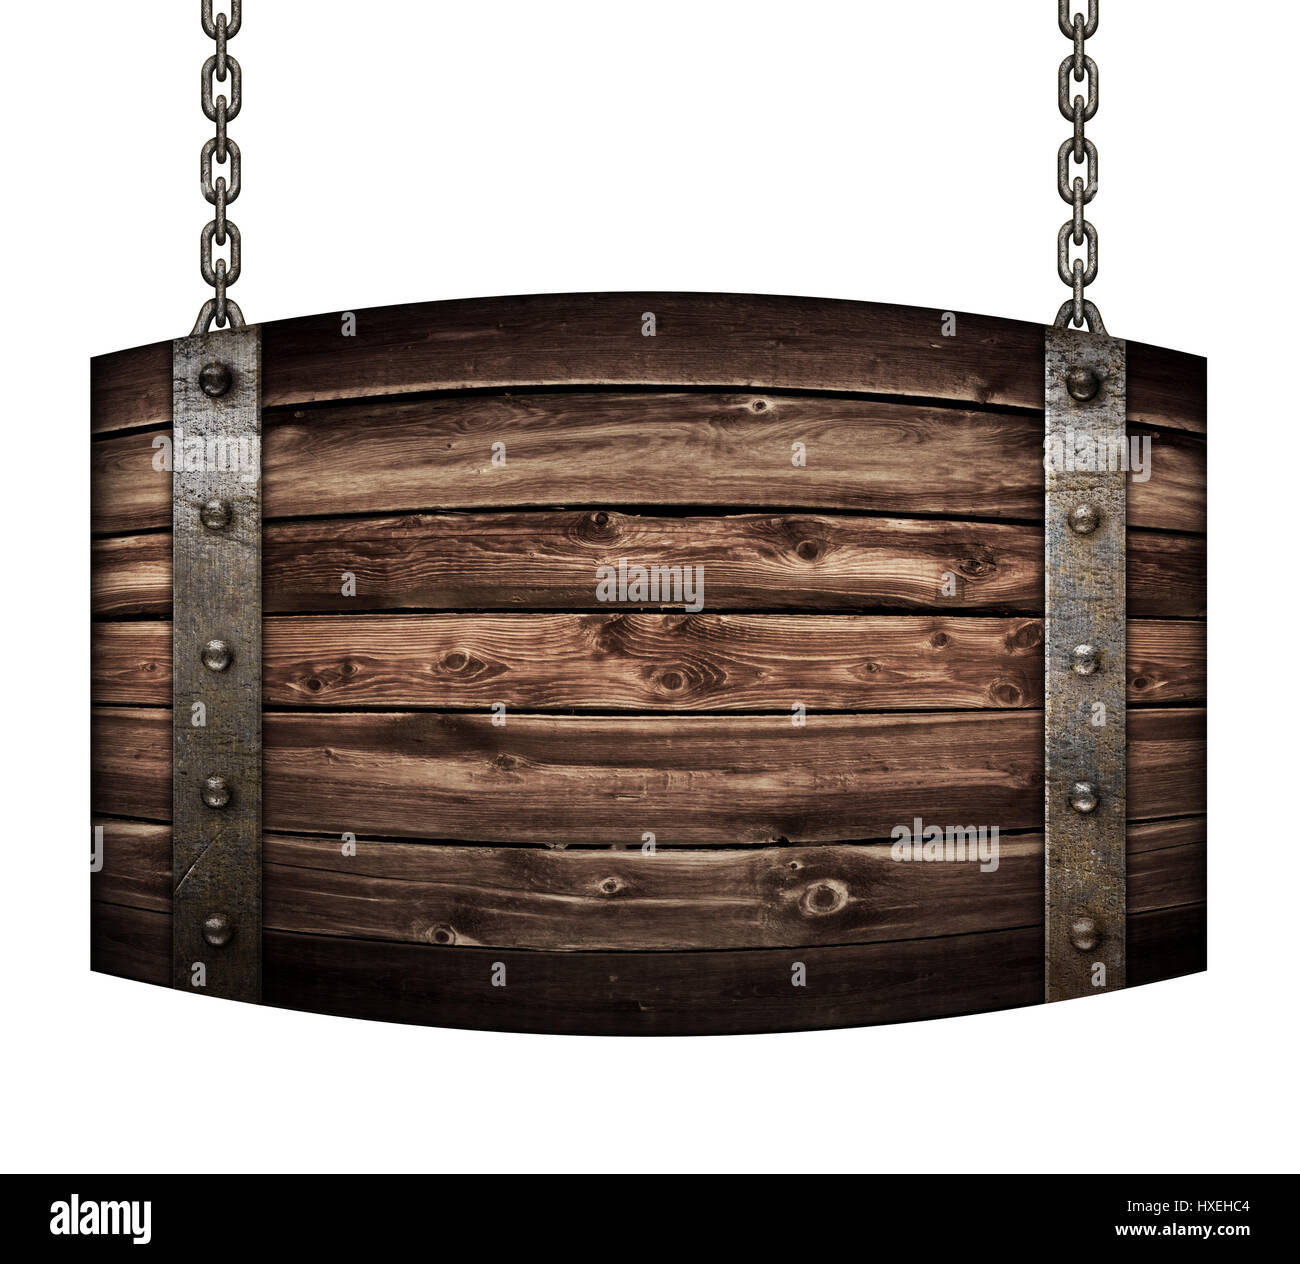 Vintage wood barrel signboard for restaurant hanging on chains isolated 3d illustration Stock Photo